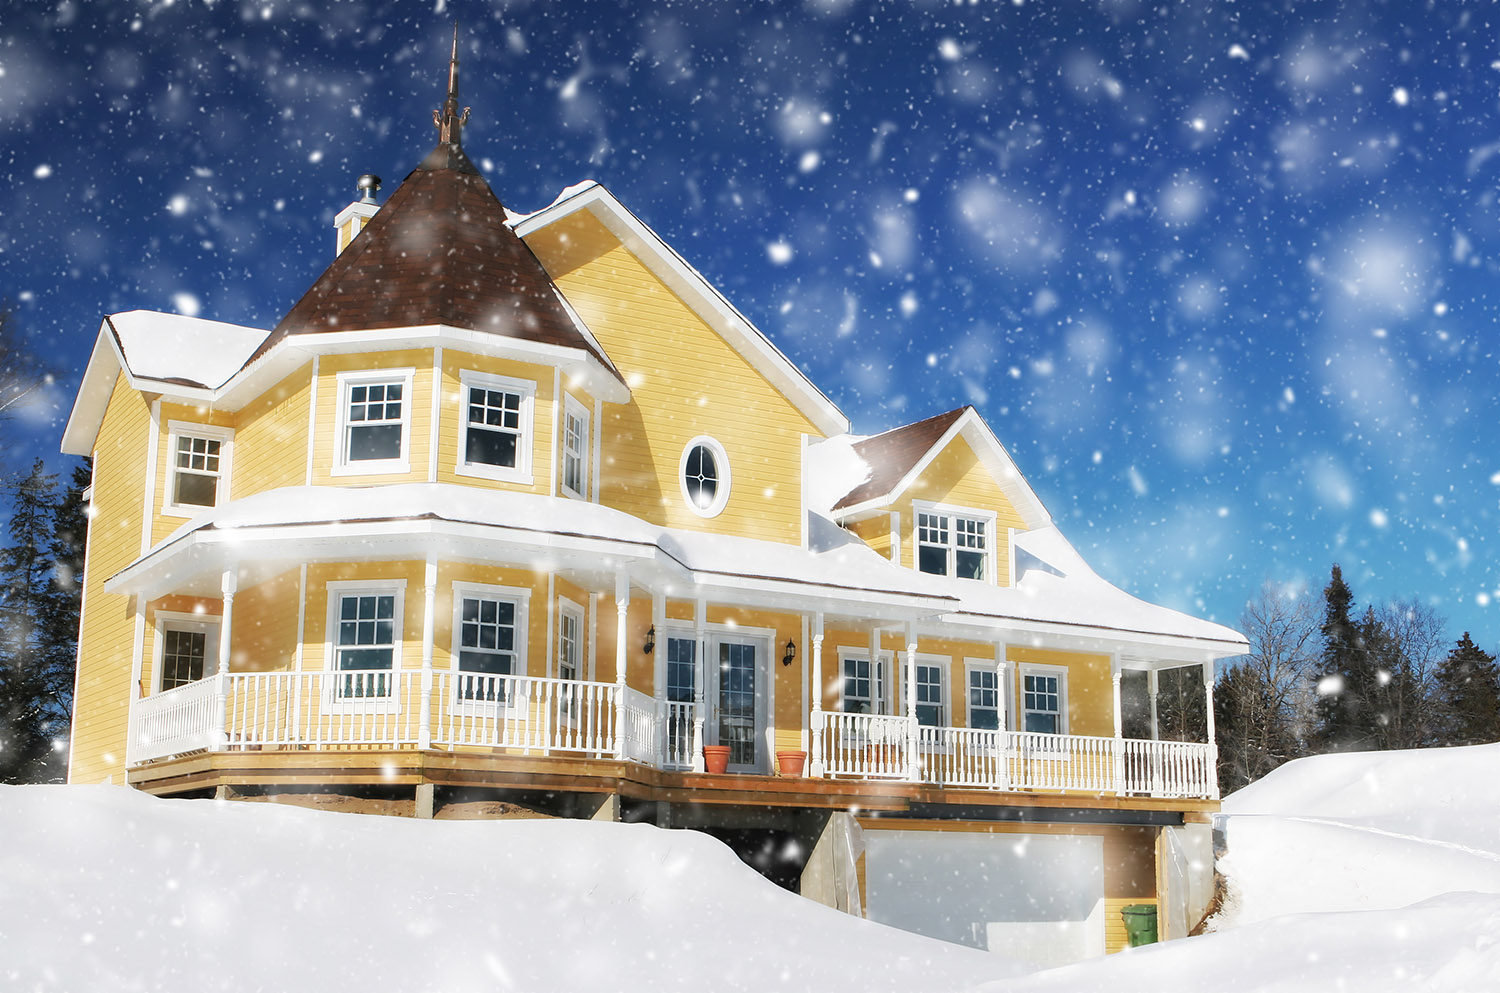 Cozy Modern Yellow House with Light Snow Fall